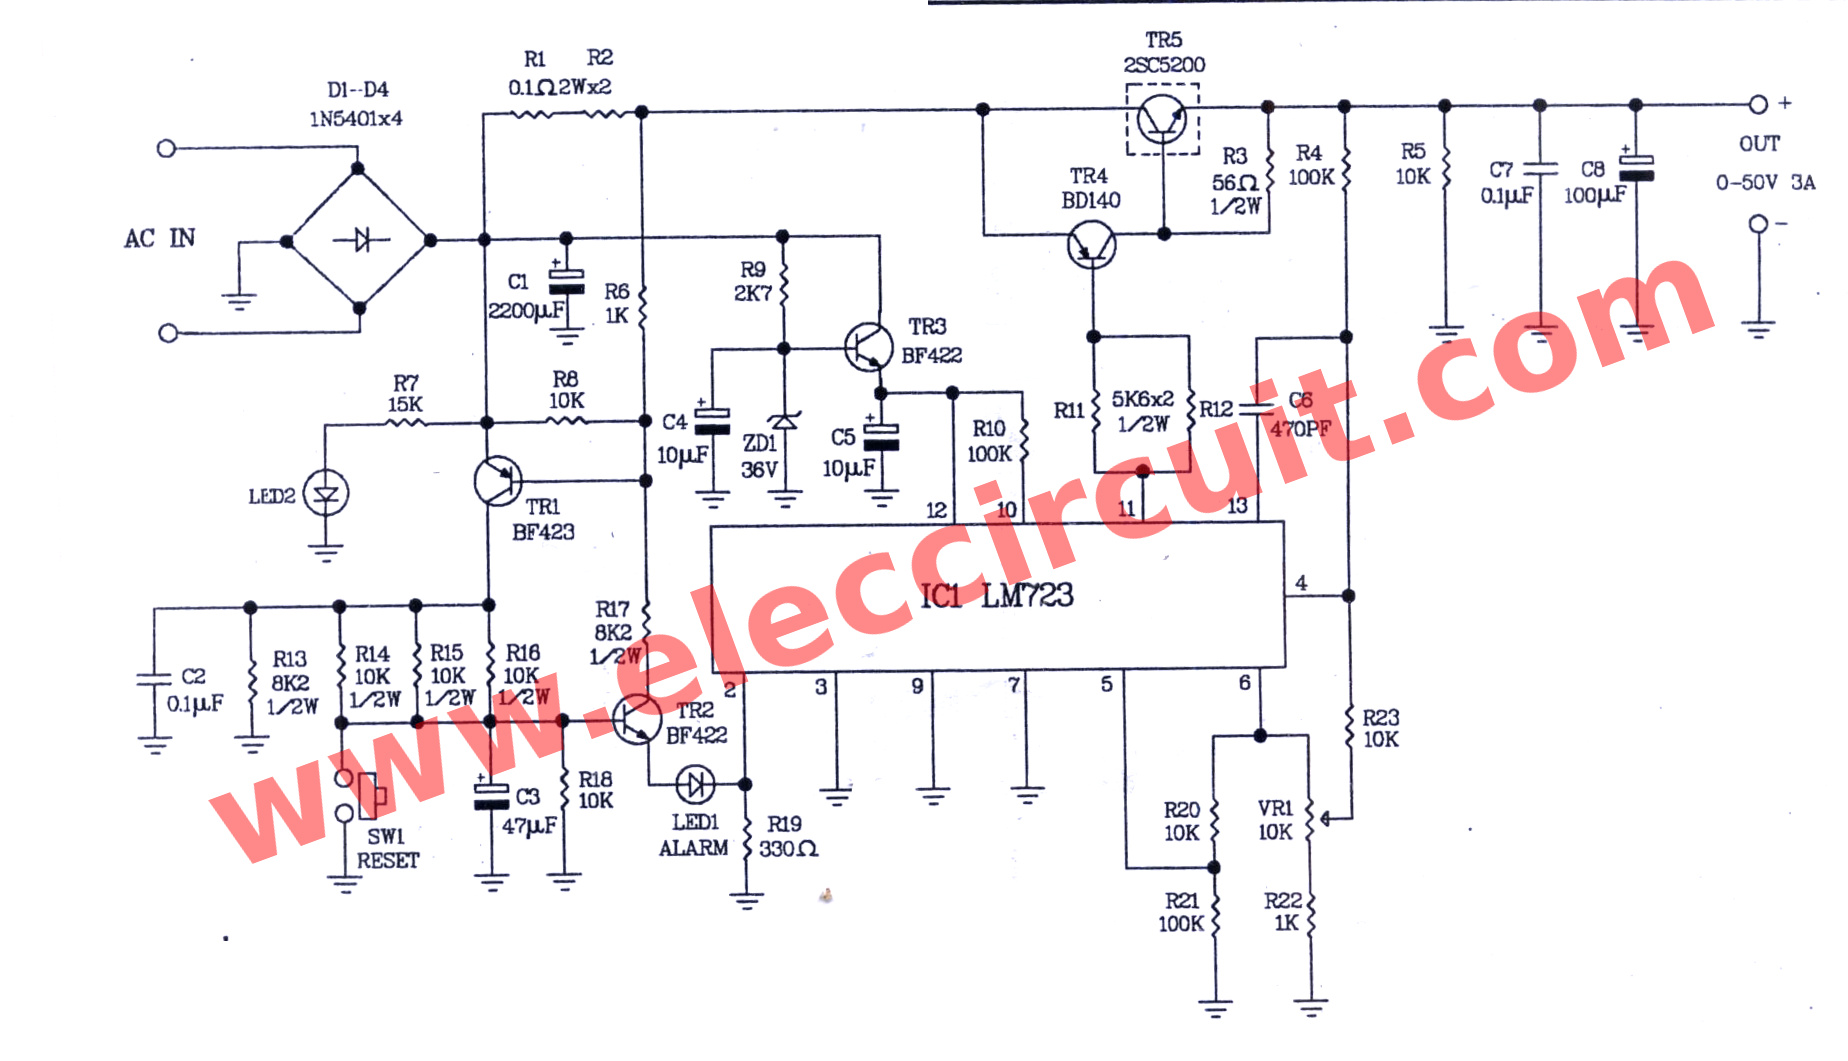 hight resolution of the circuit diagram of 0 50v 3a variable dc power supply